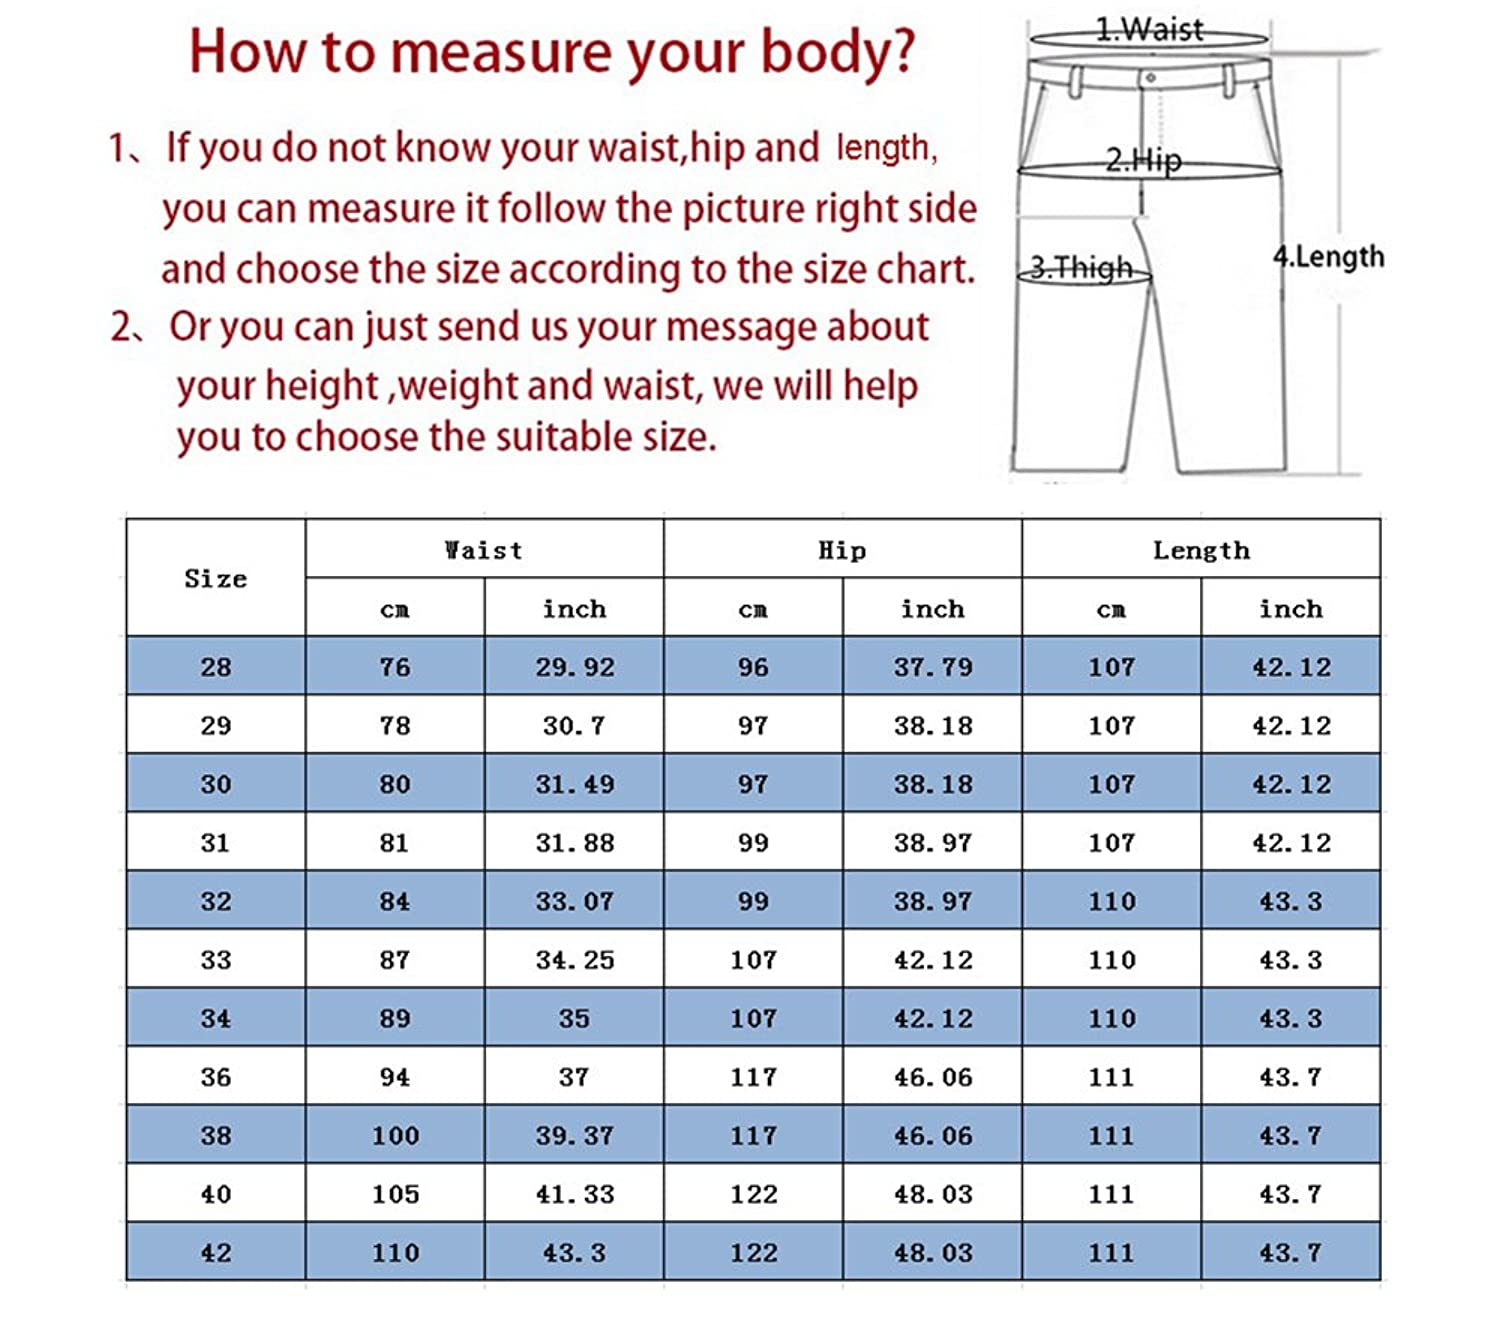 Indian army height weight chart images free any chart examples indian army height weight chart choice image free any chart examples military height weight chart females nvjuhfo Choice Image